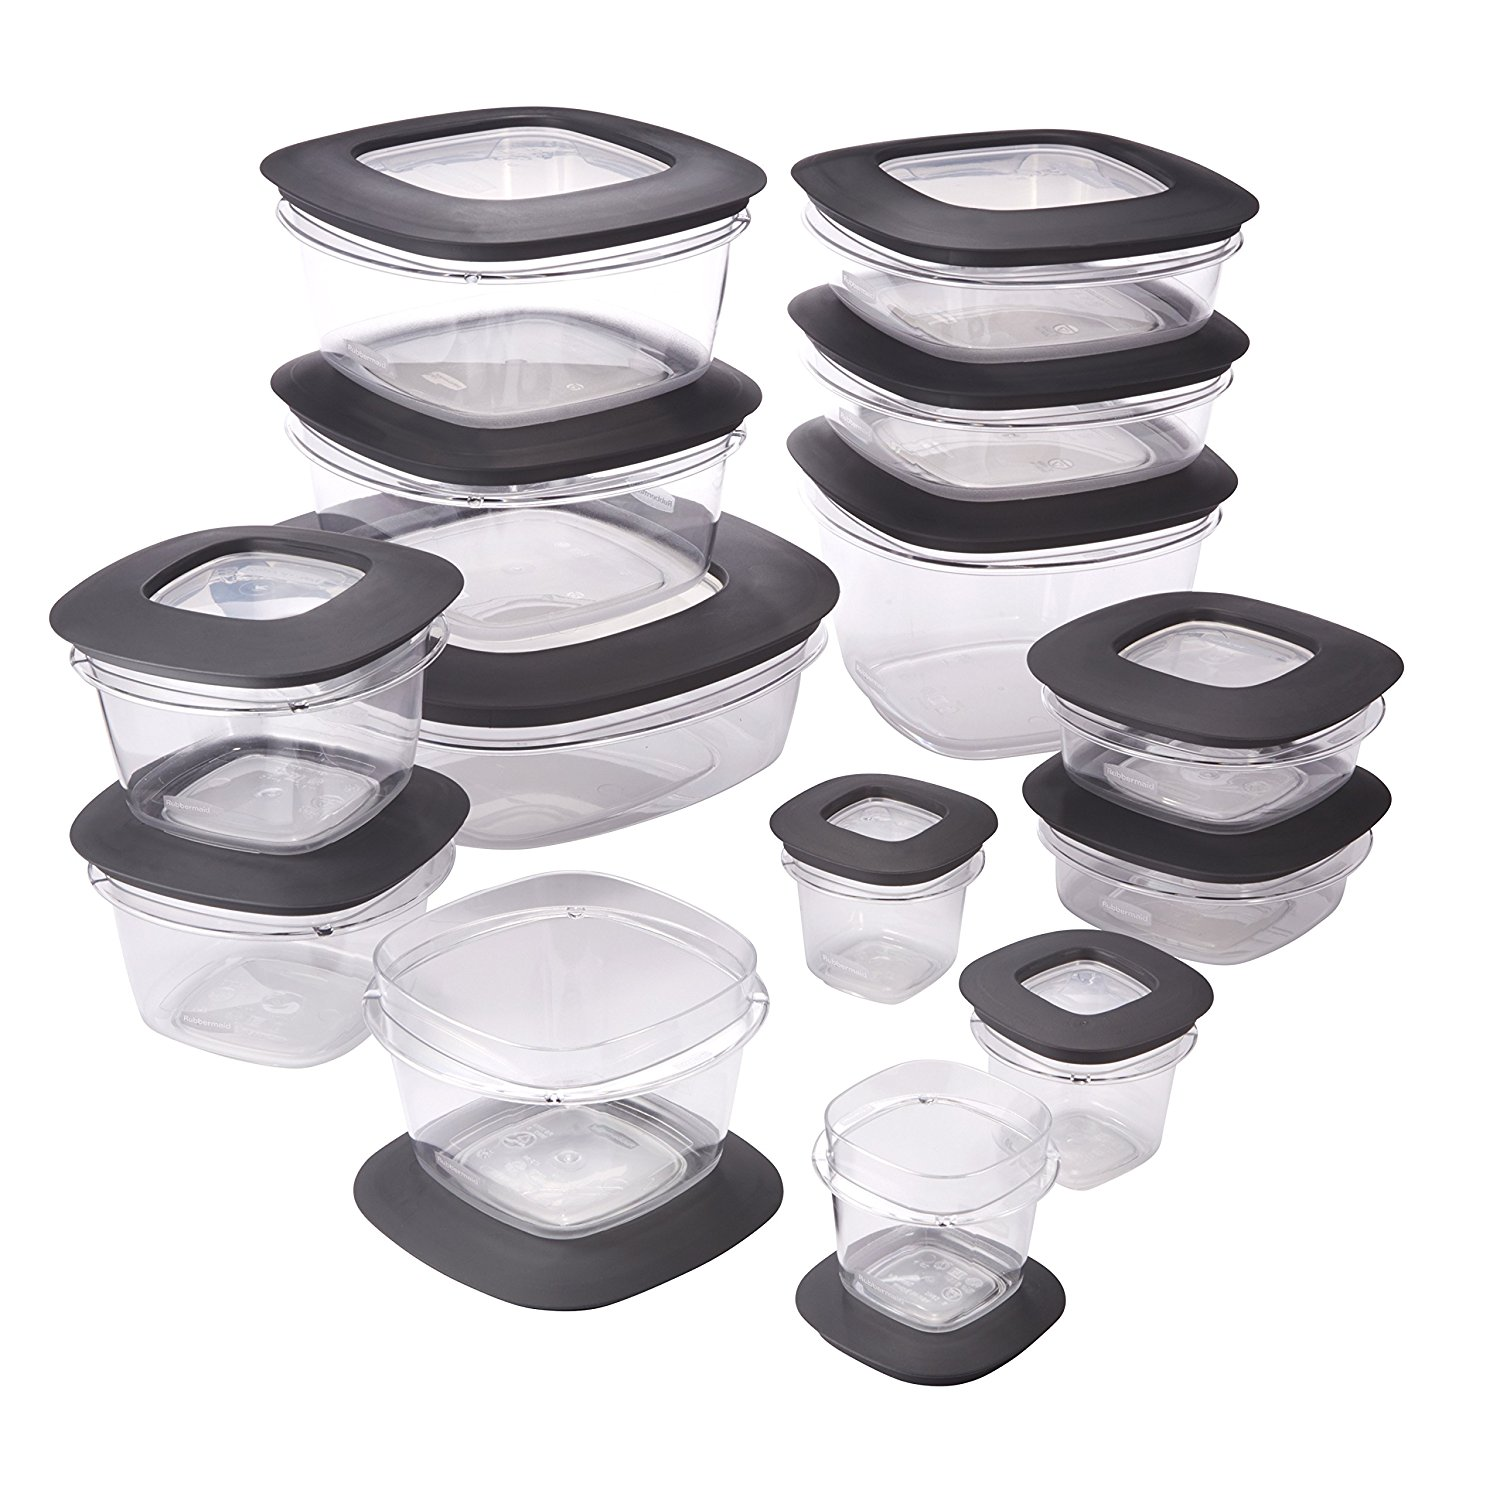 today only rubbermaid premier food storage containers 28piece set for